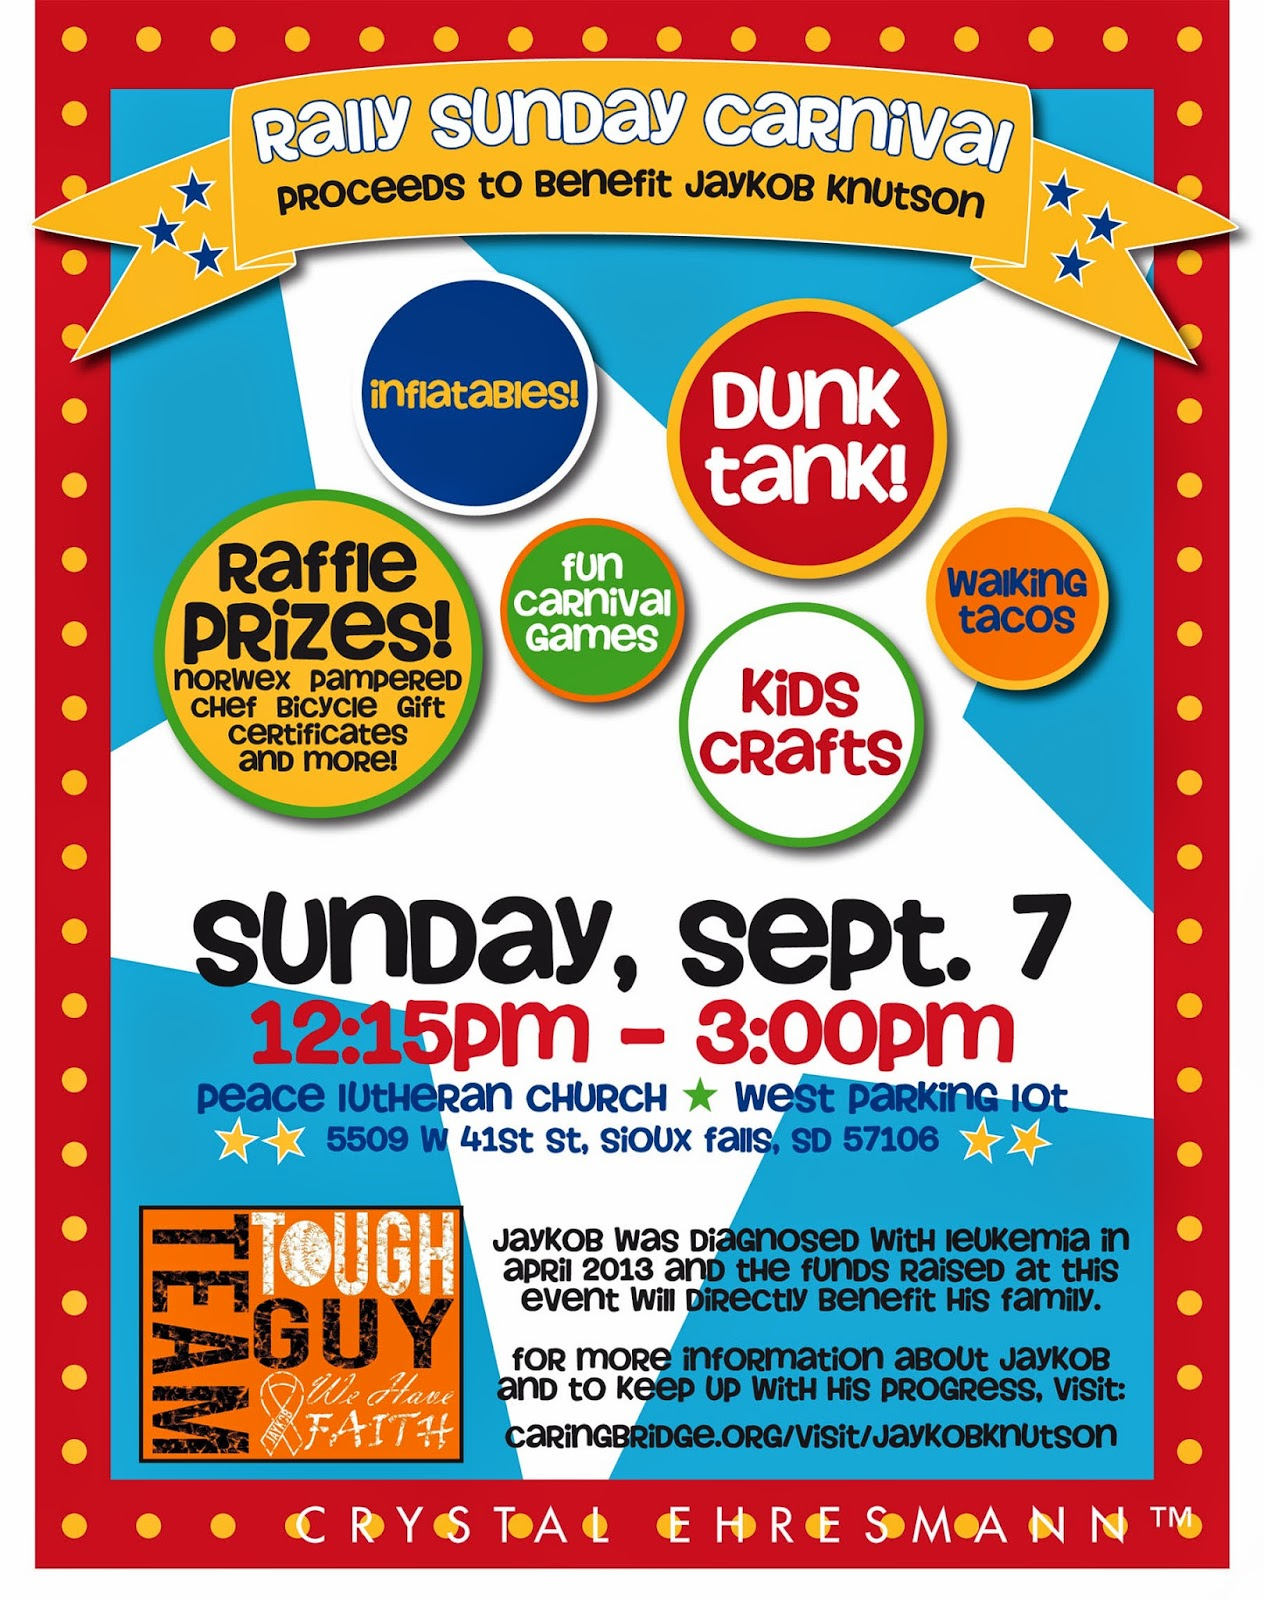 ce graphic design recent work carnival fundraiser flyer